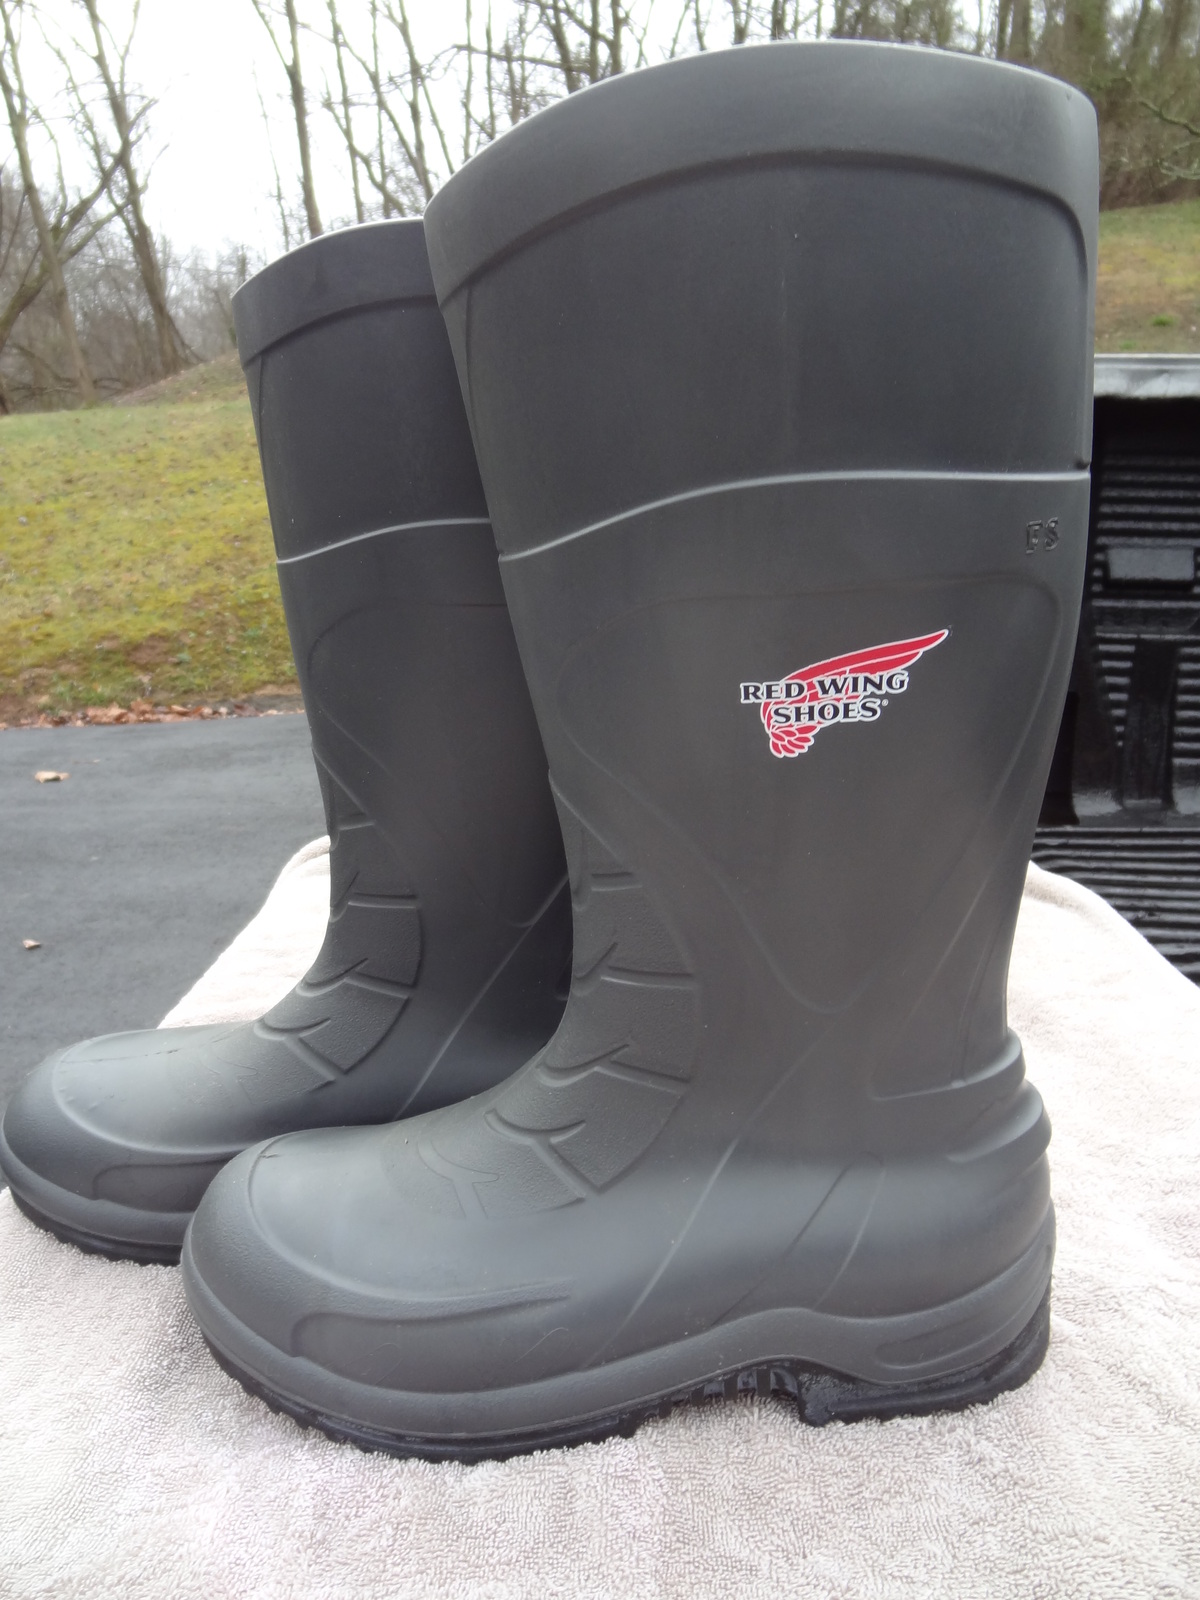 c7455e09bad Red Wing Rubber Boots 59001 Astm F 2413-11 and 50 similar items